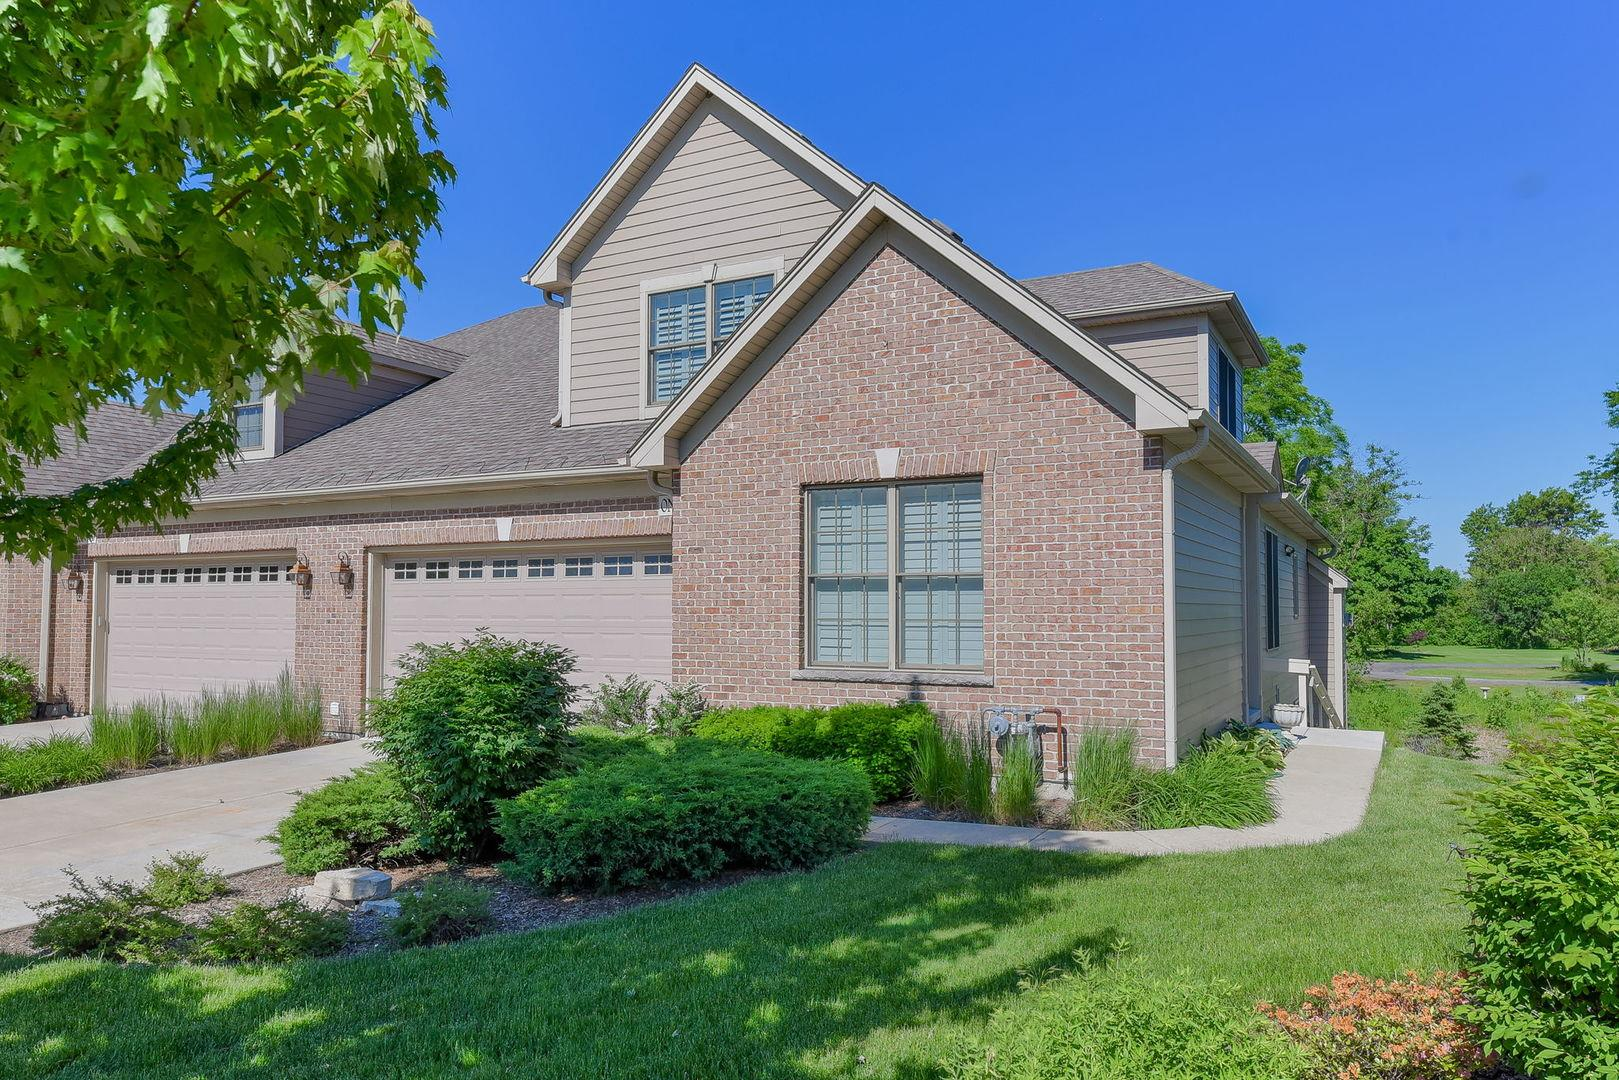 0N772 Waverly Court, Wheaton, IL 60187 - #: 11039140